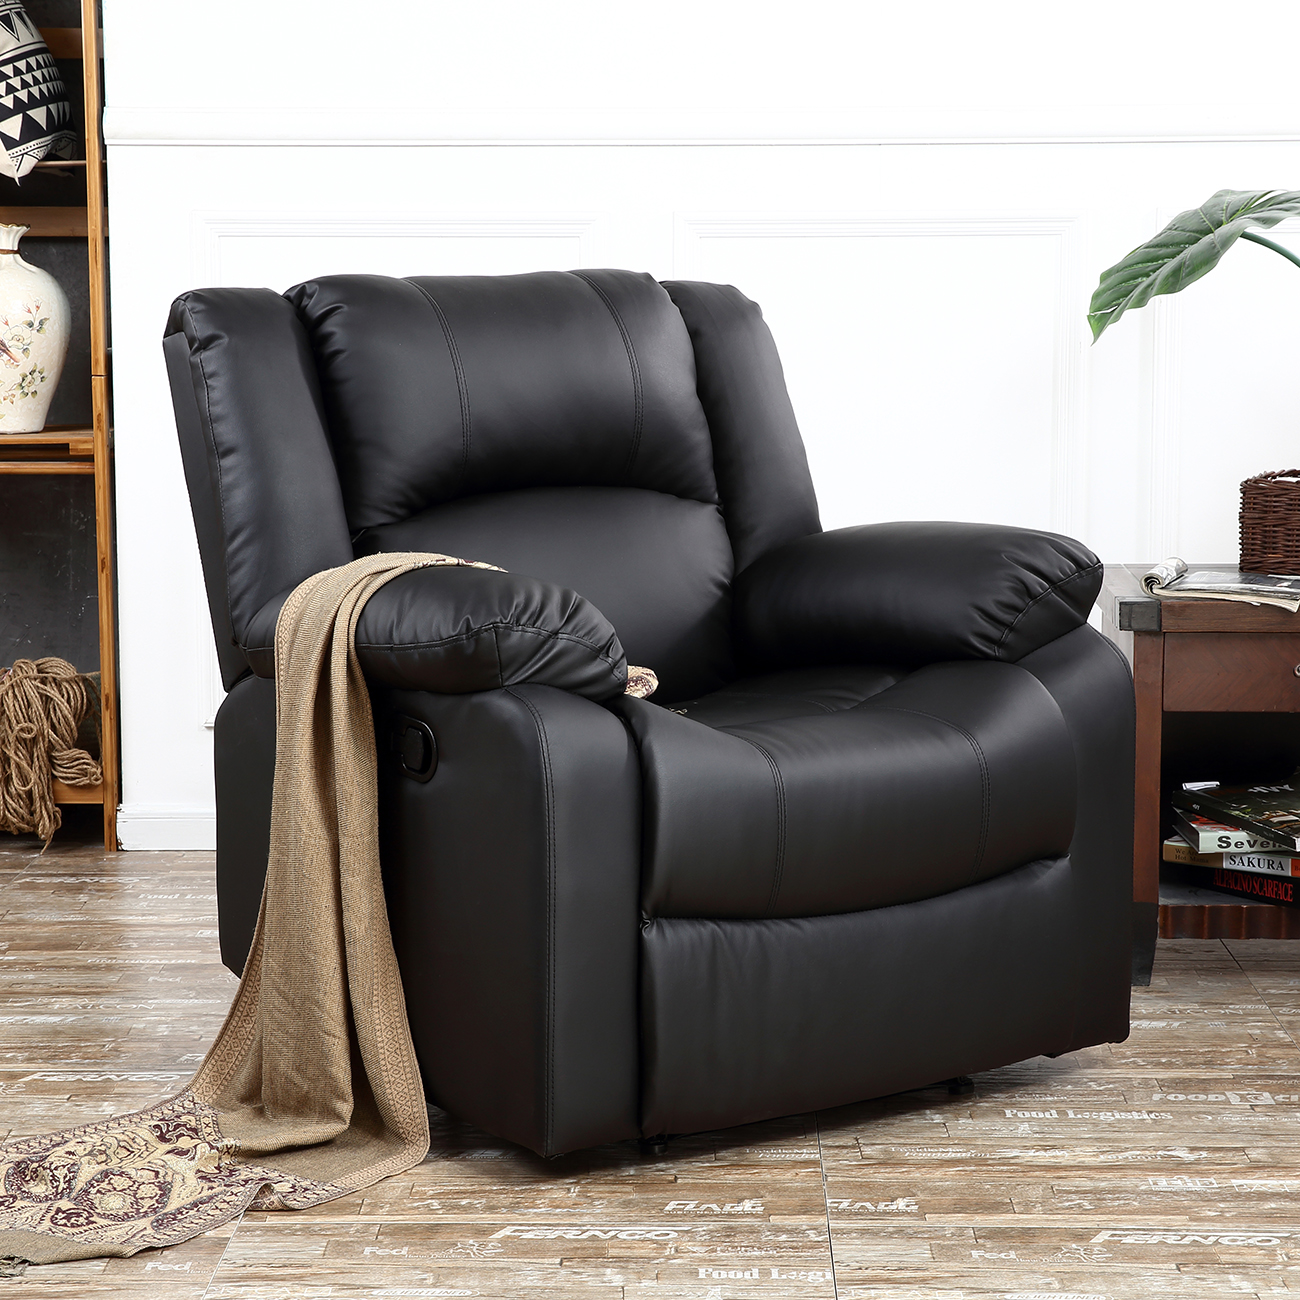 New reclining chair furniture recliner living room faux